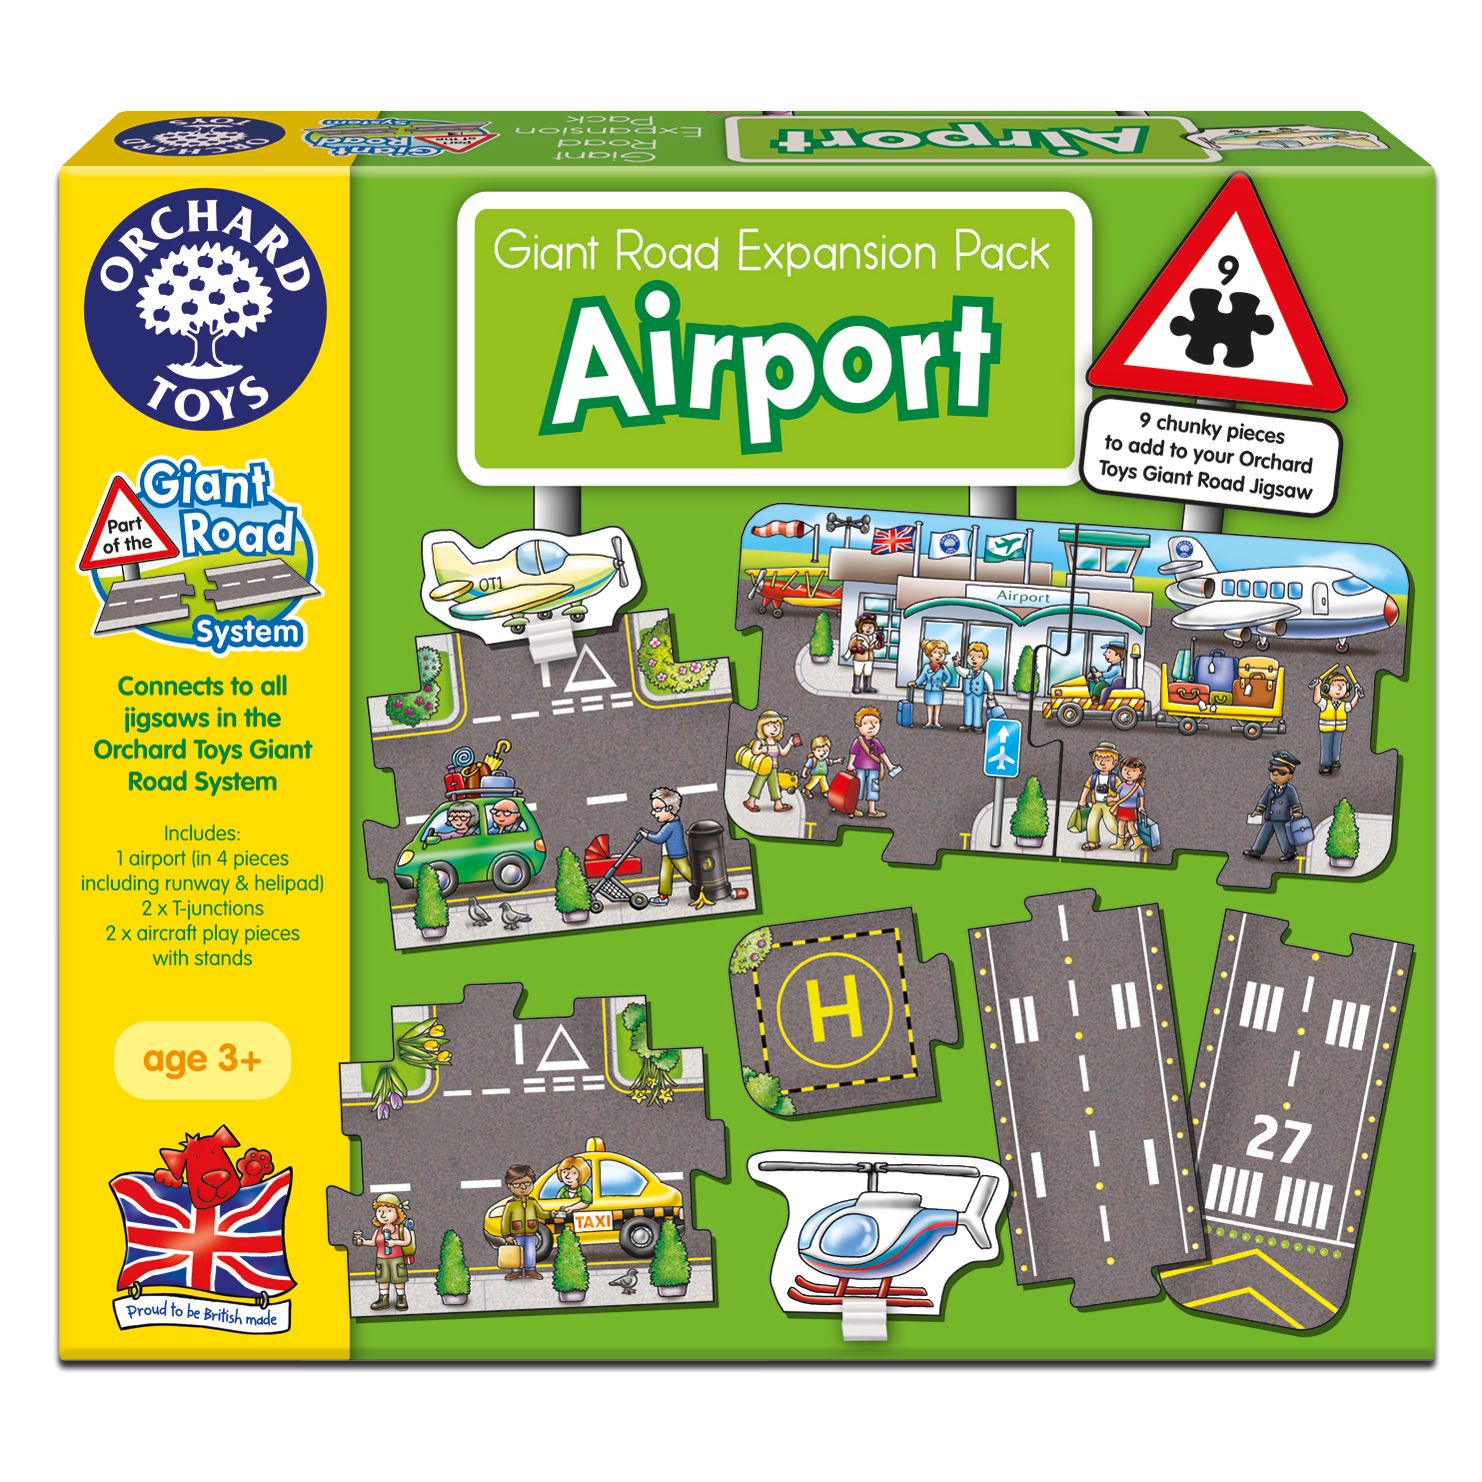 Orchard Toys Orchard Toys Giant Road Airport Expansion Pack